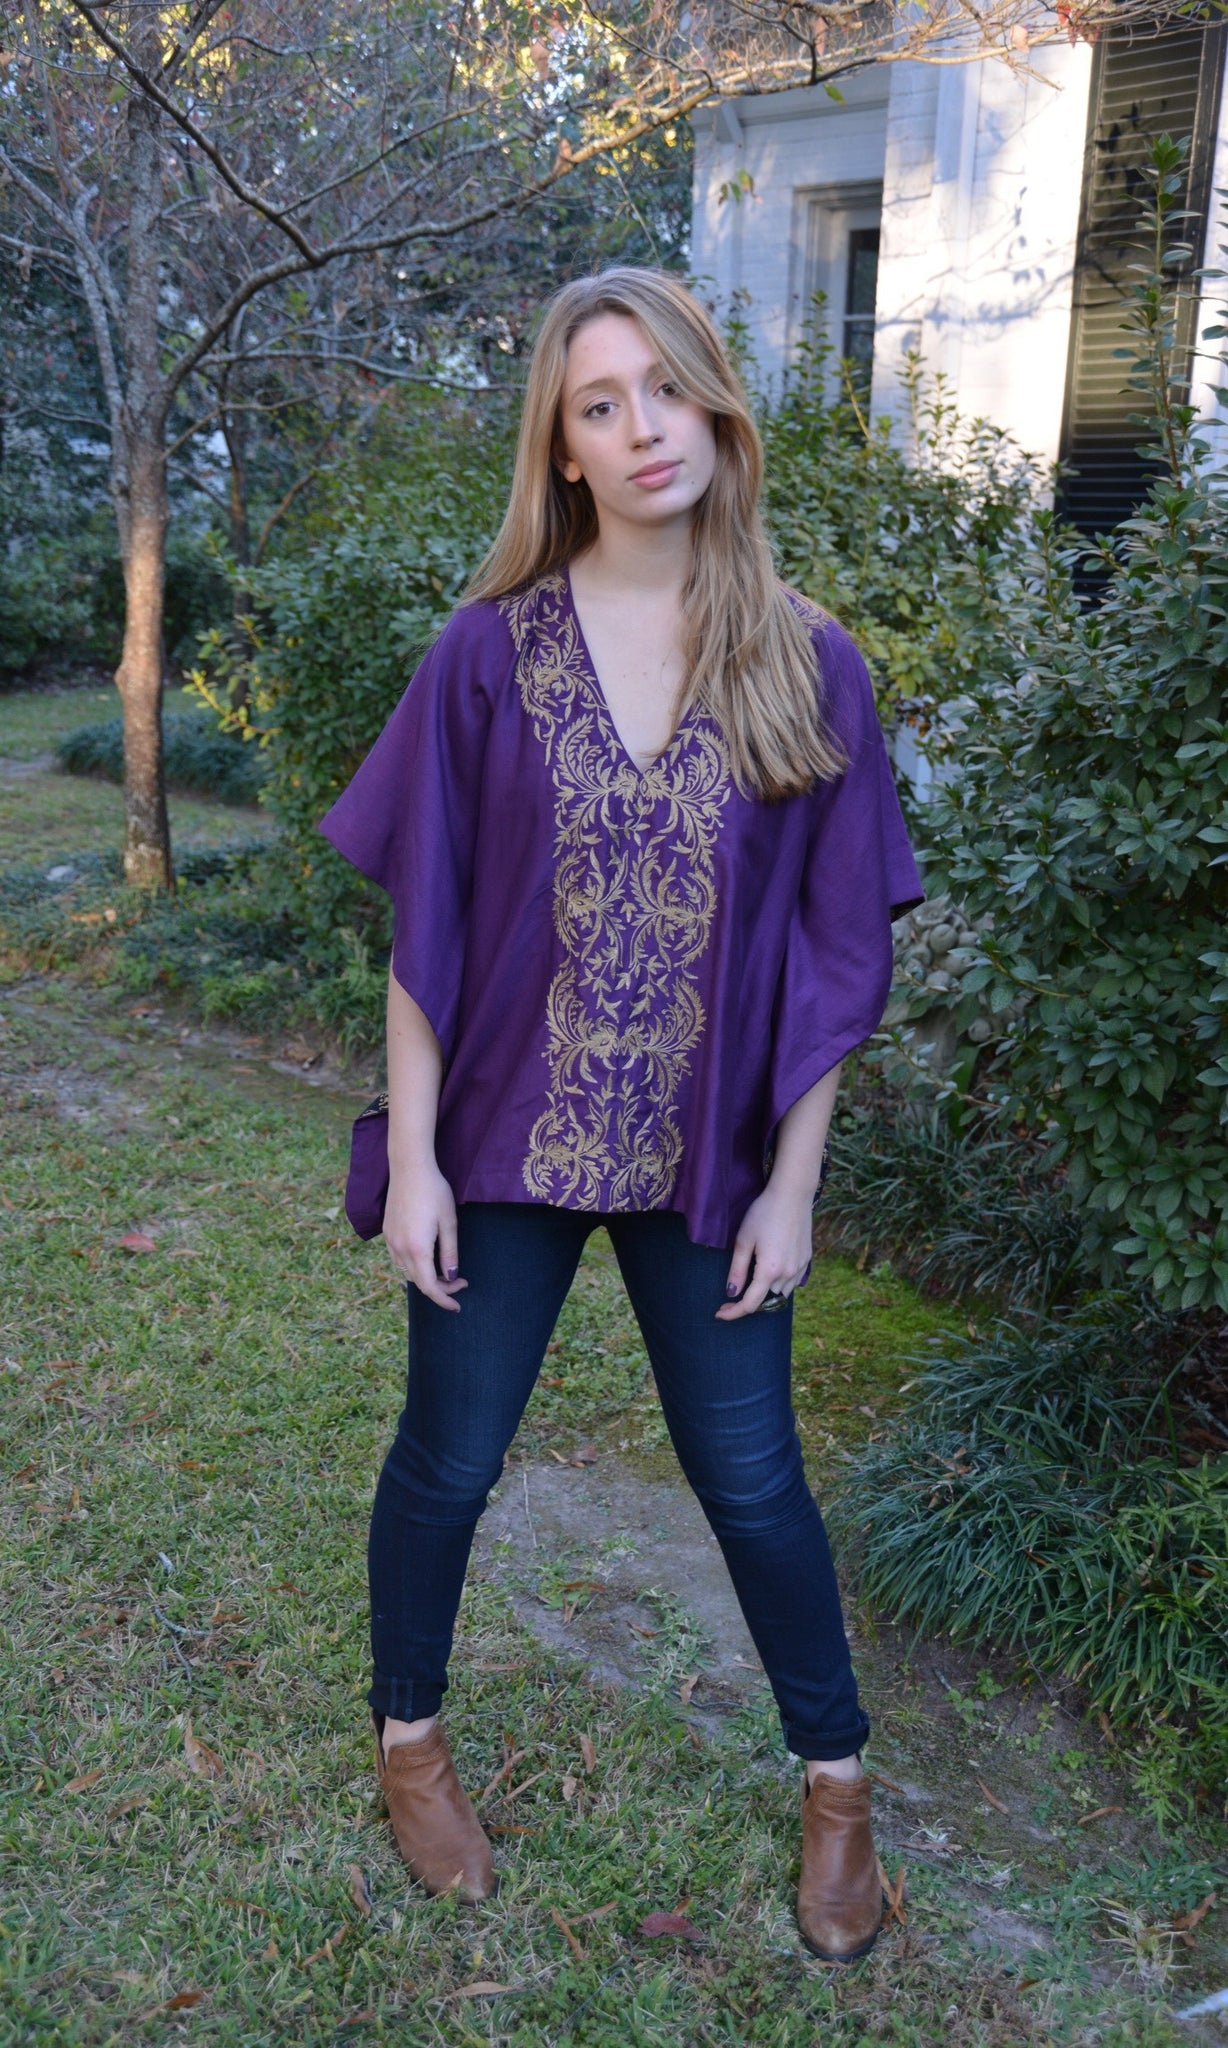 Brinjal Purple Silk Kaftan Top | Stylized Vine Embroidery - sueanu